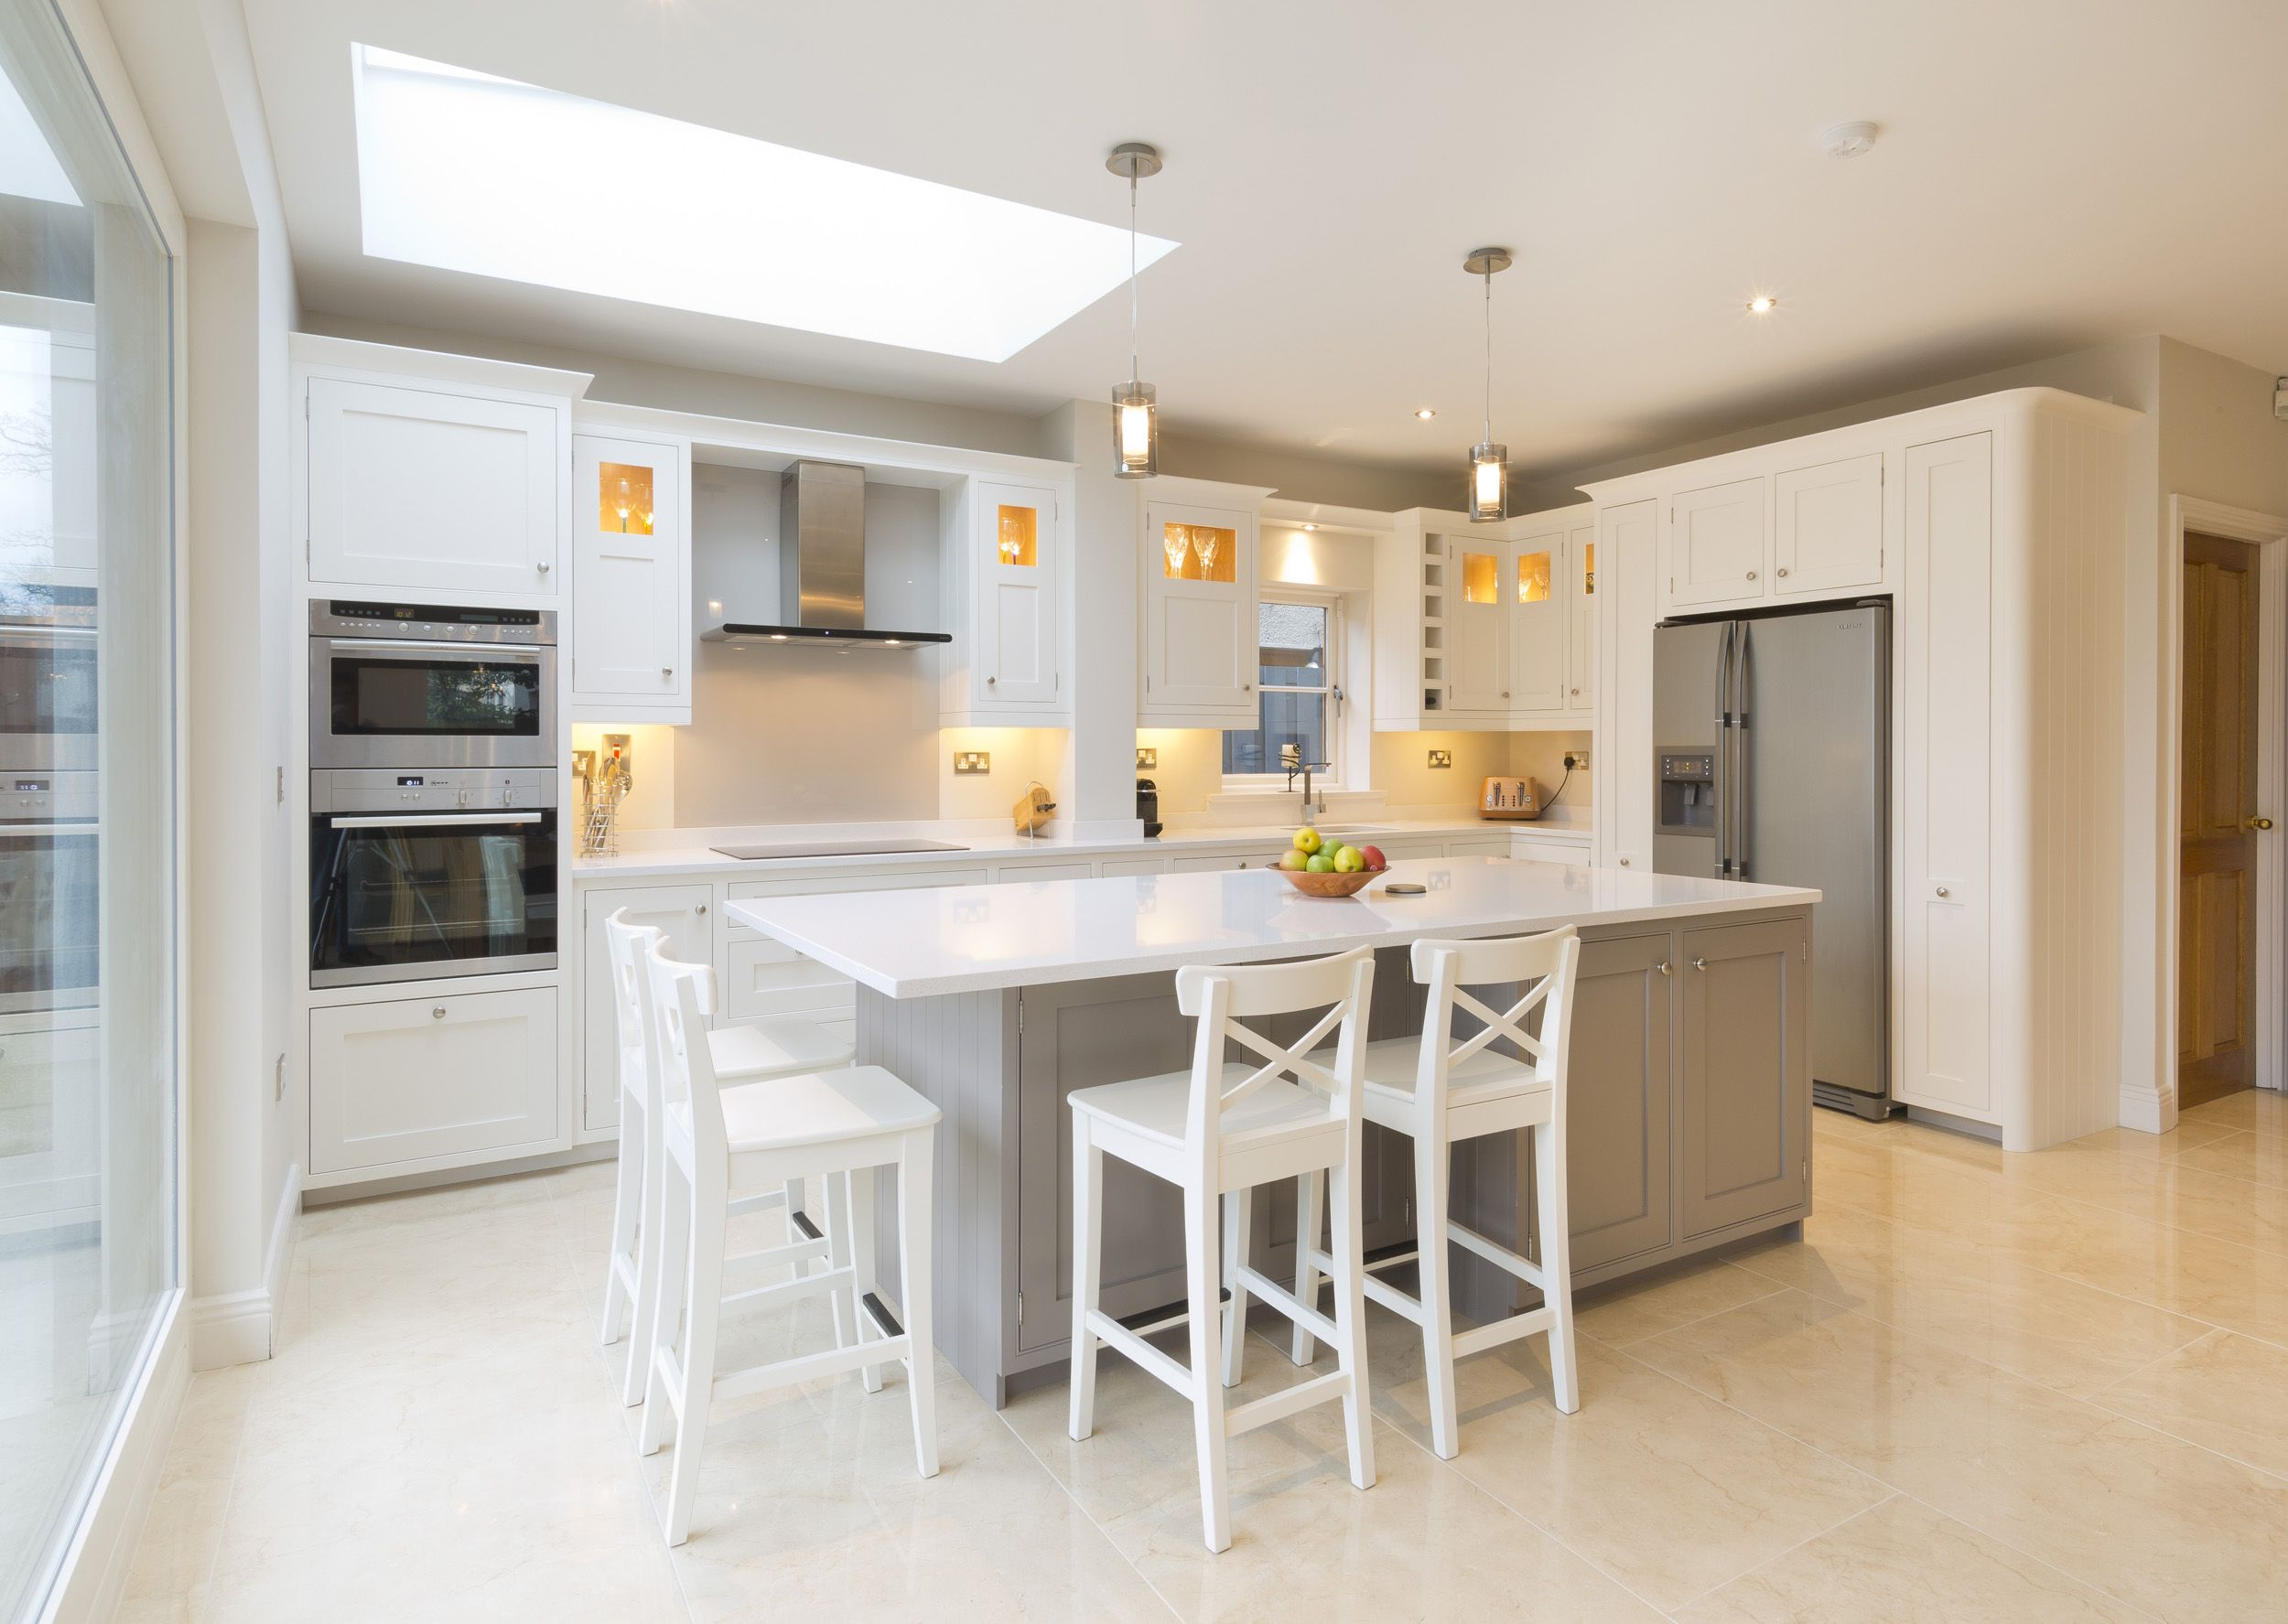 Best An In Frame Kitchen With A Shaker Door Painted In Strong 400 x 300